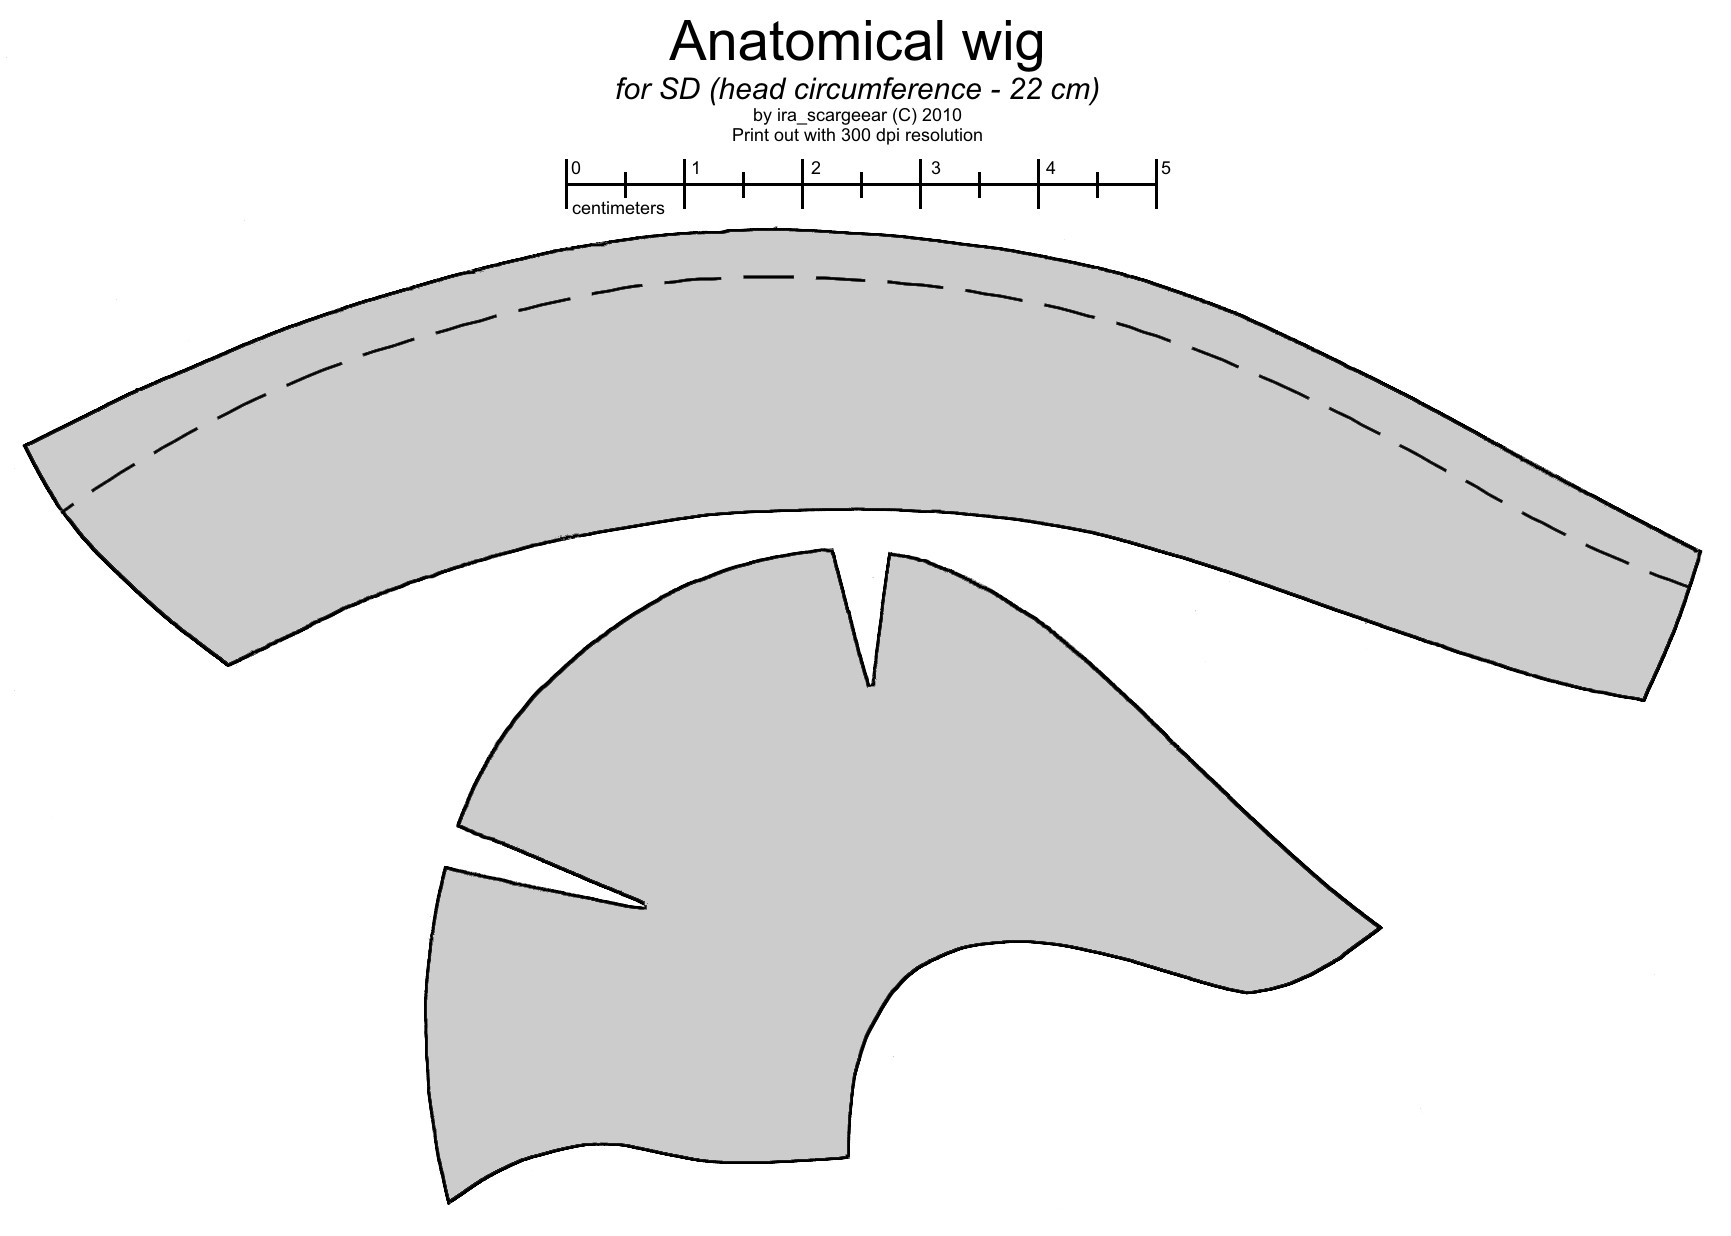 Anatomical wig for SD BJD doll